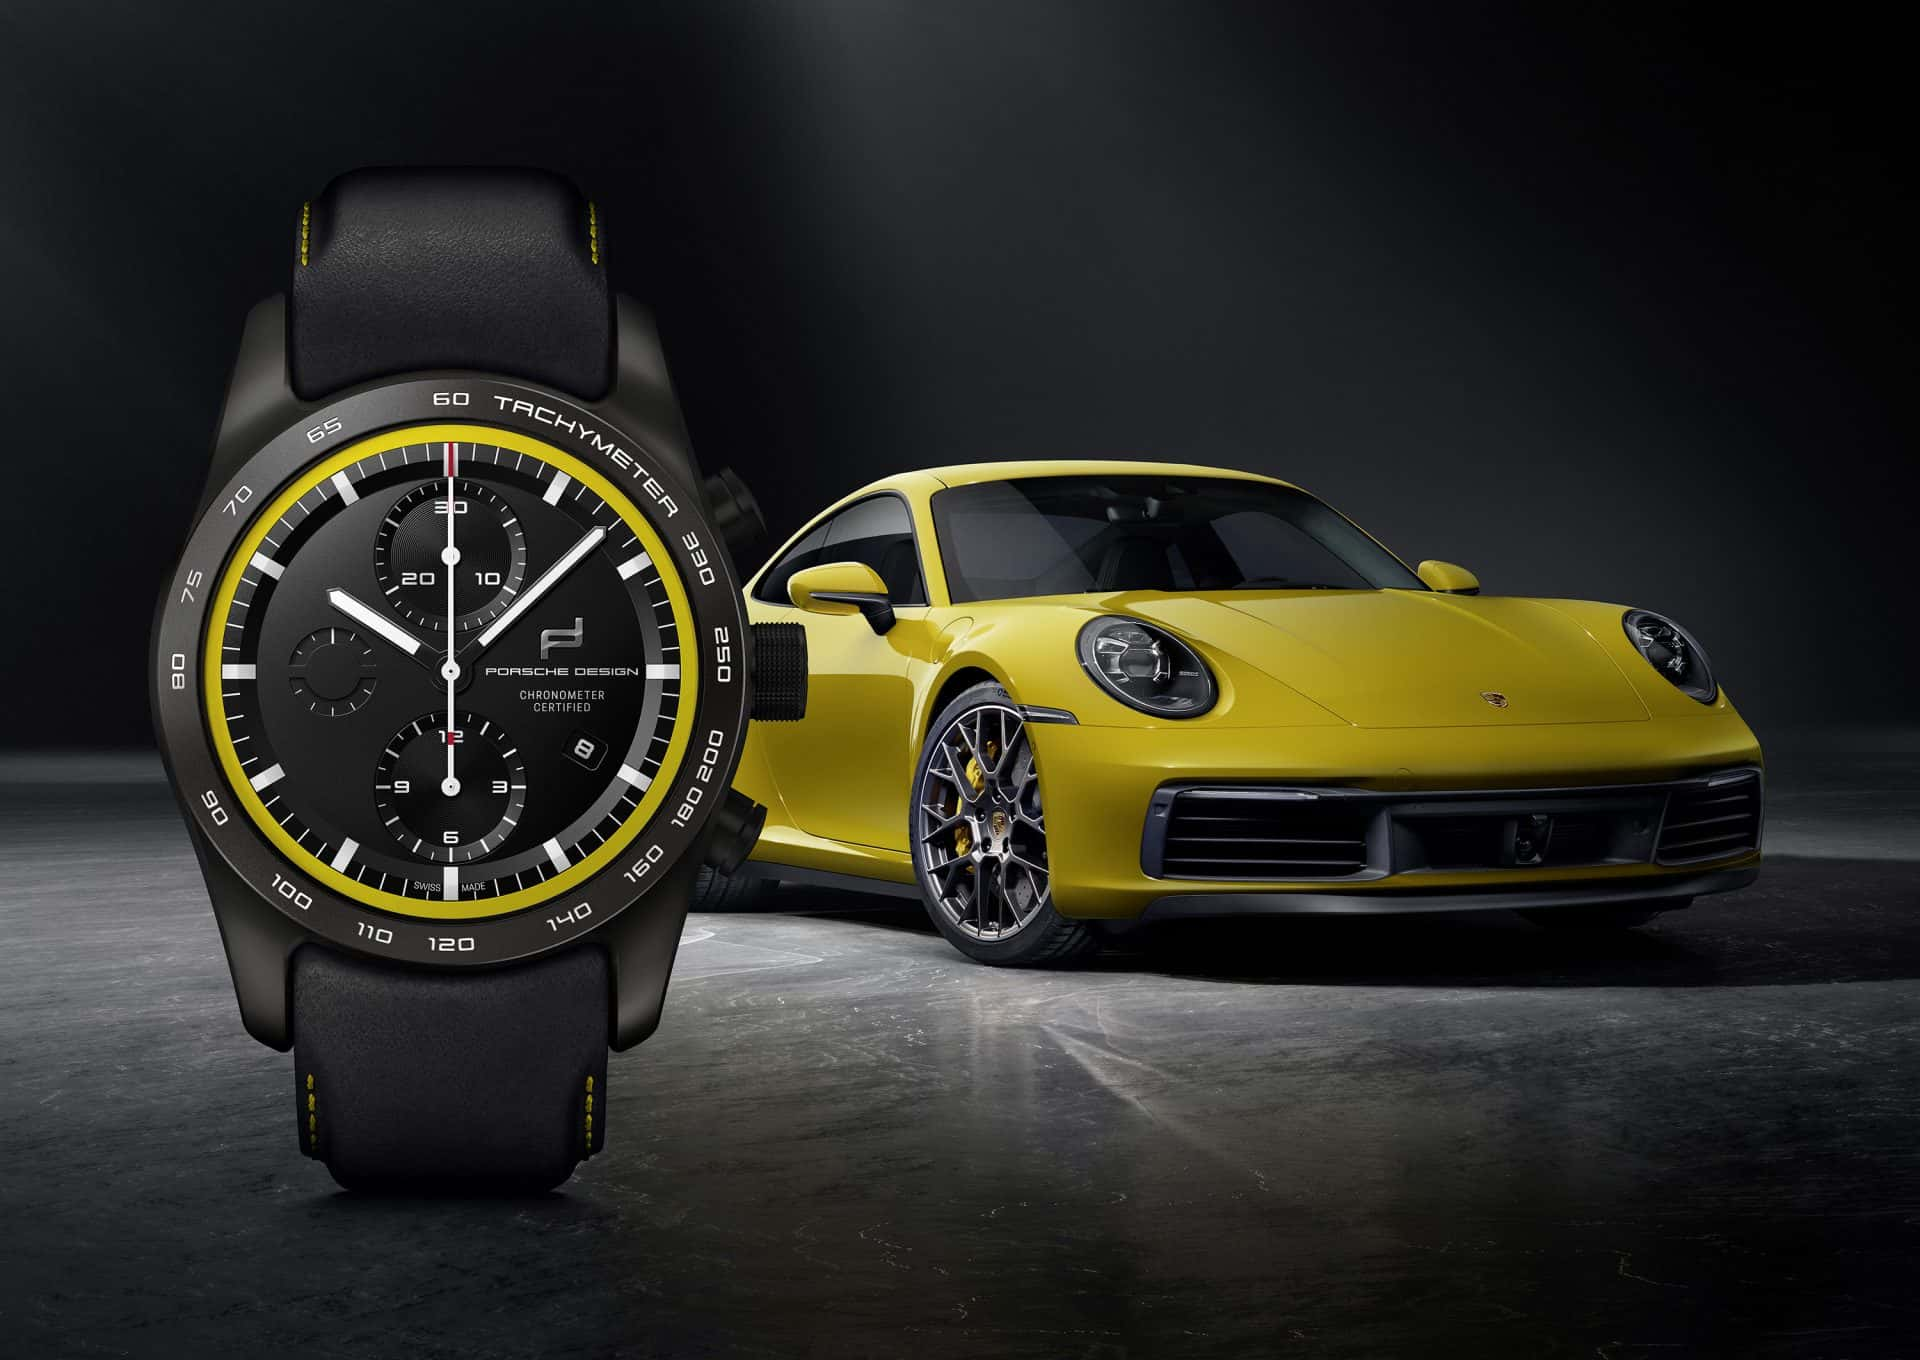 KV custom built Timepiecs 911 Carrera 4S Racing Yellow Black